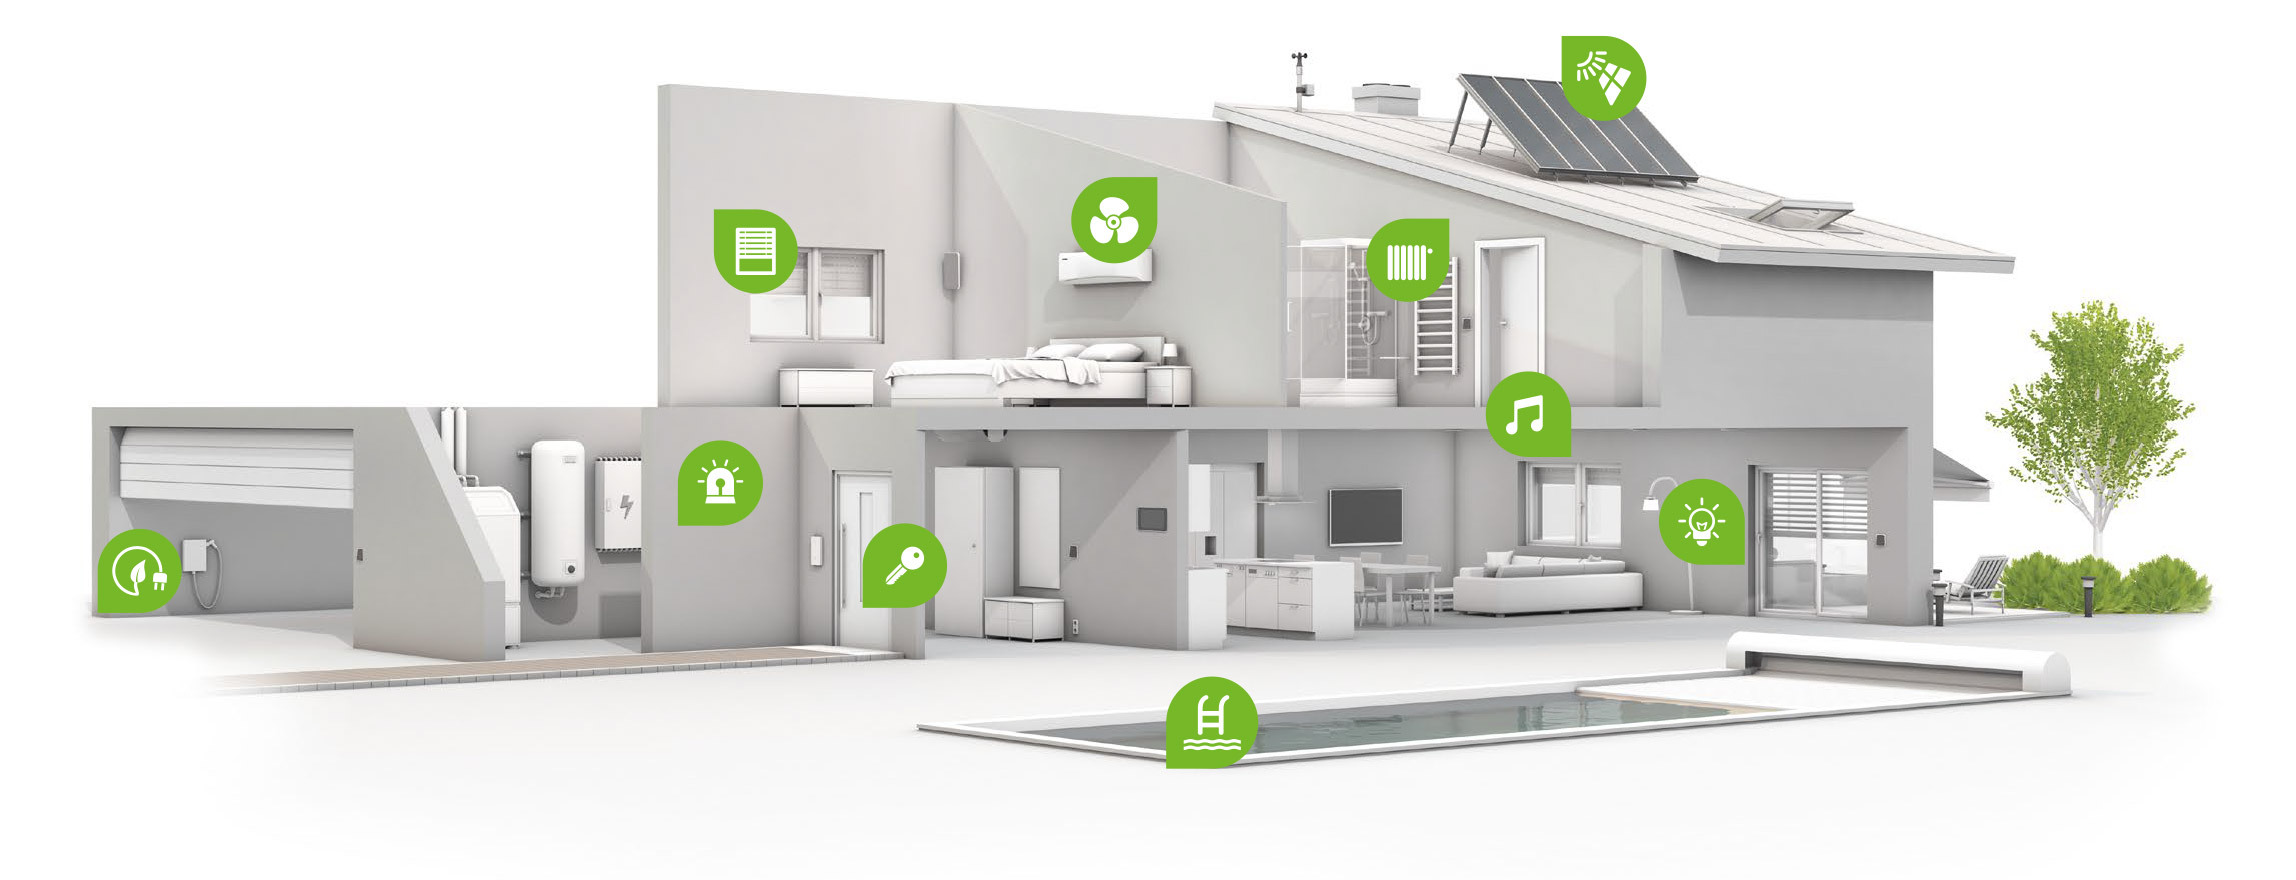 Complete the Noolight Smart Home with the help of the Mikrotik